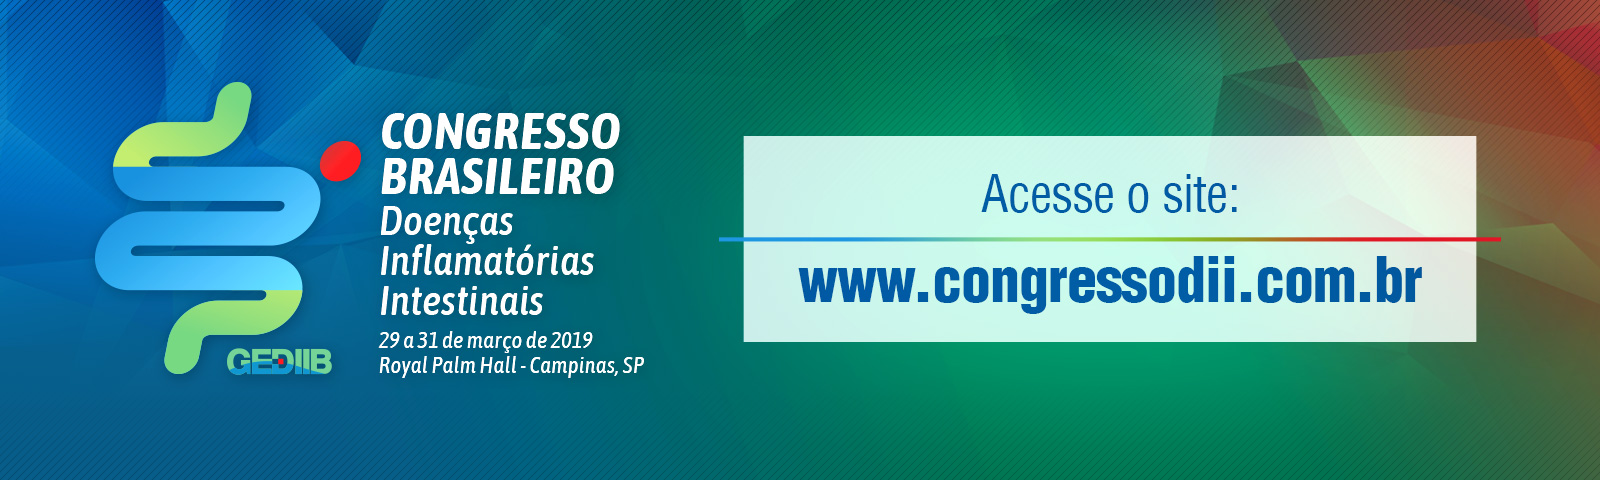 Site do Congresso